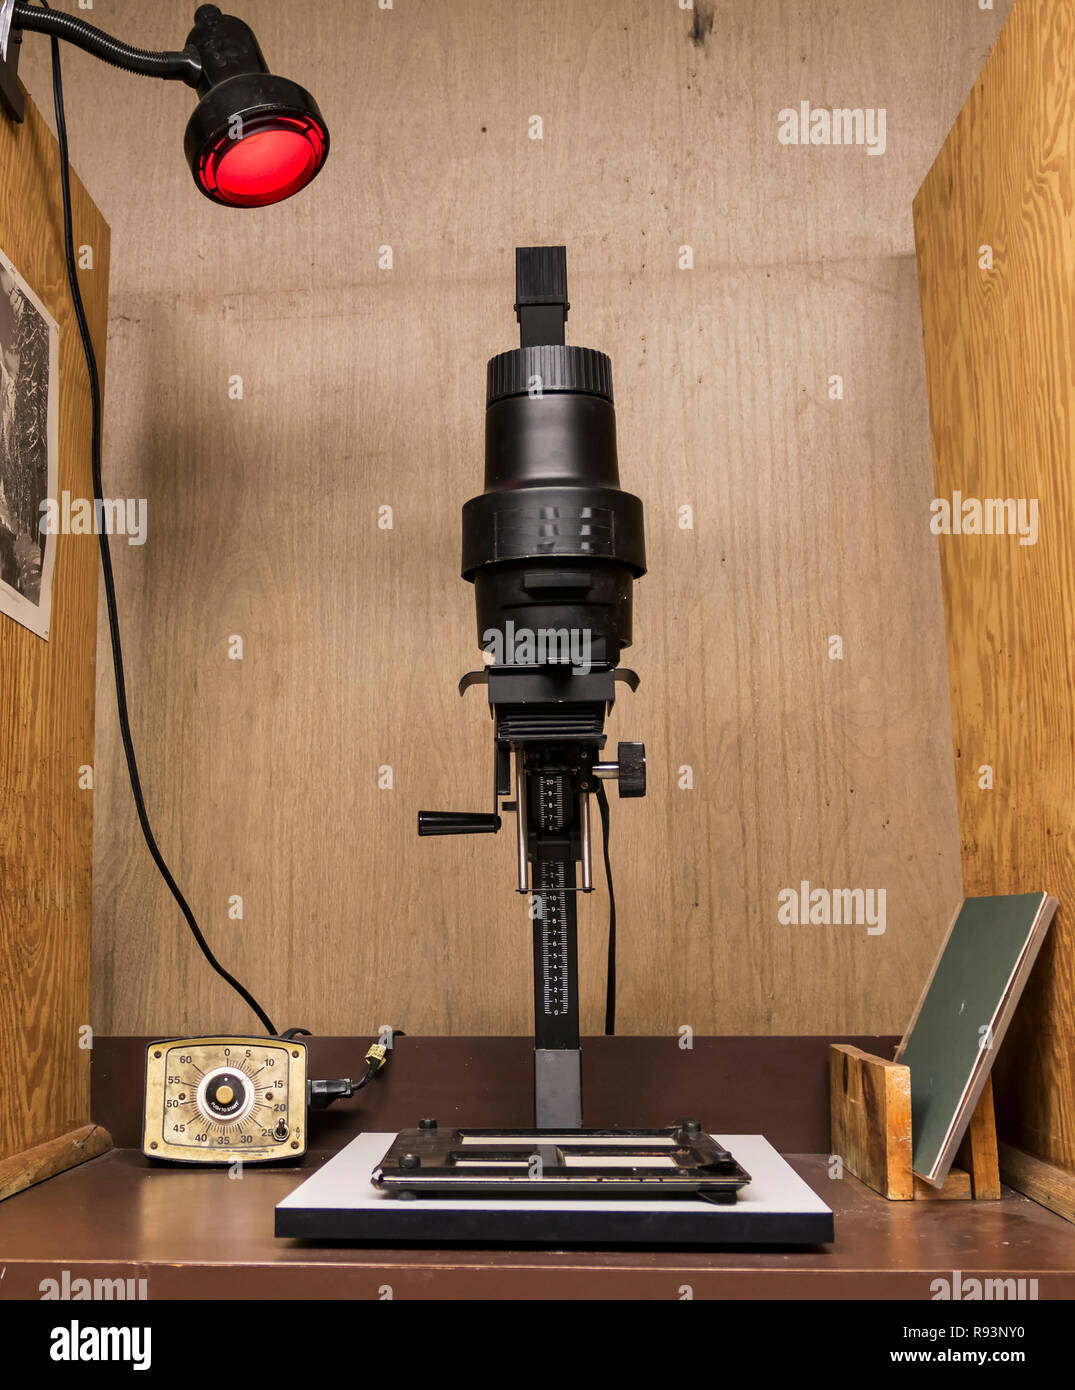 Enlarger Stock Photos & Enlarger Stock Images - Alamy